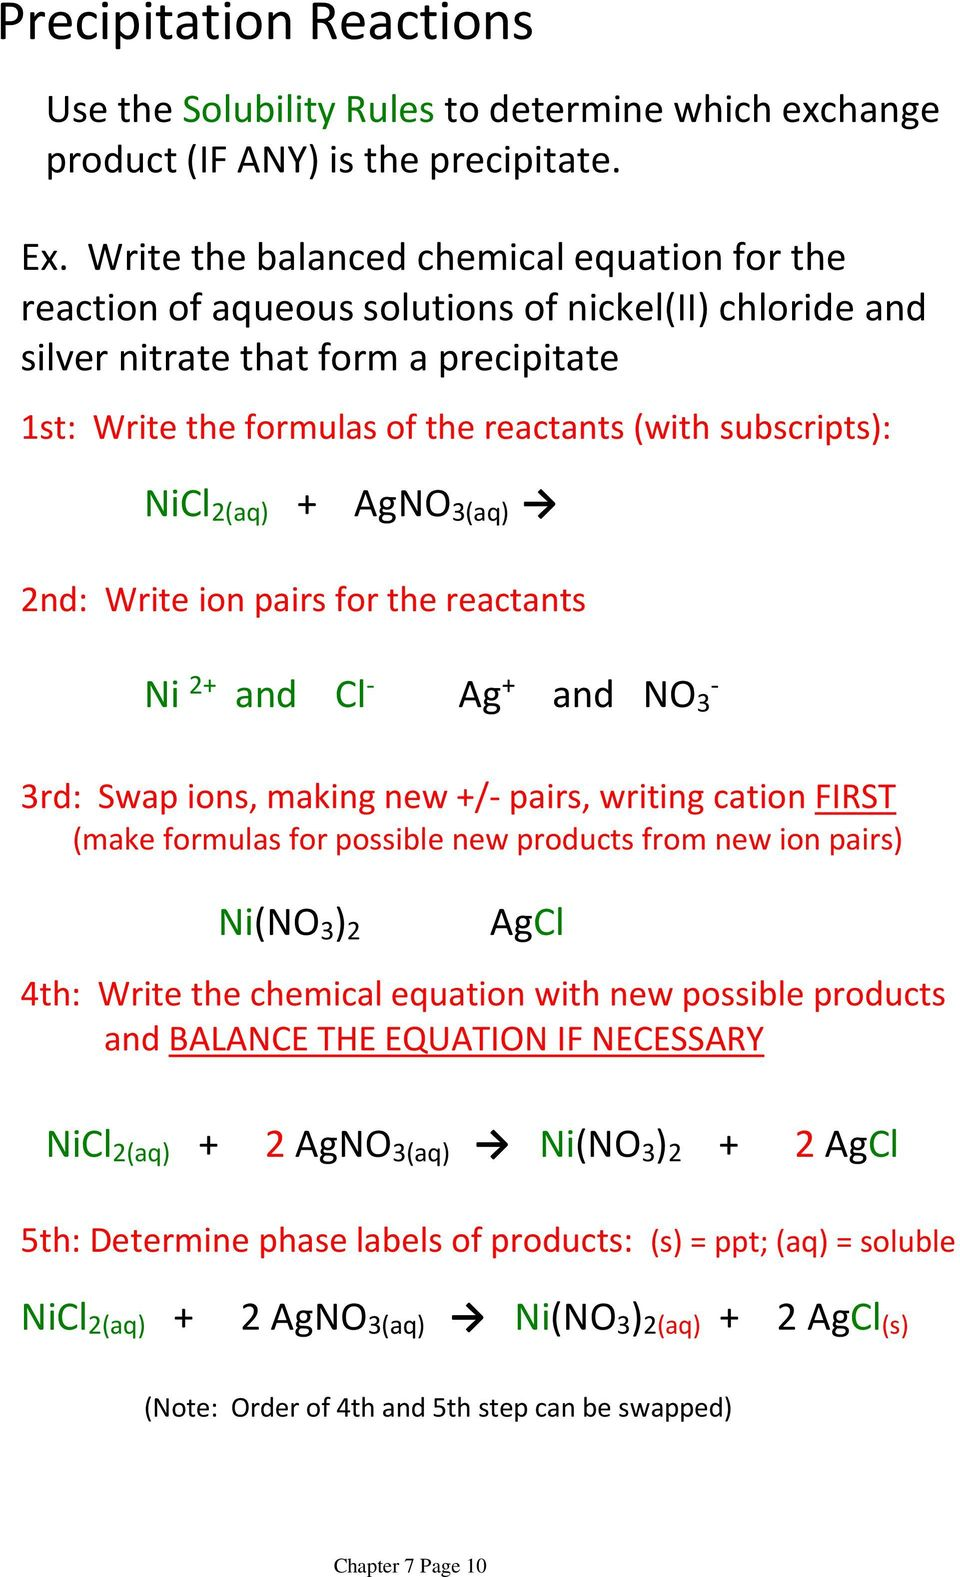 subscripts): NiCl 2(aq) + AgNO 3(aq) 2nd: Write ion pairs for the reactants Ni 2+ and Cl - Ag + and NO 3-3rd: Swap ions, making new +/- pairs, writing cation FIRST (make formulas for possible new